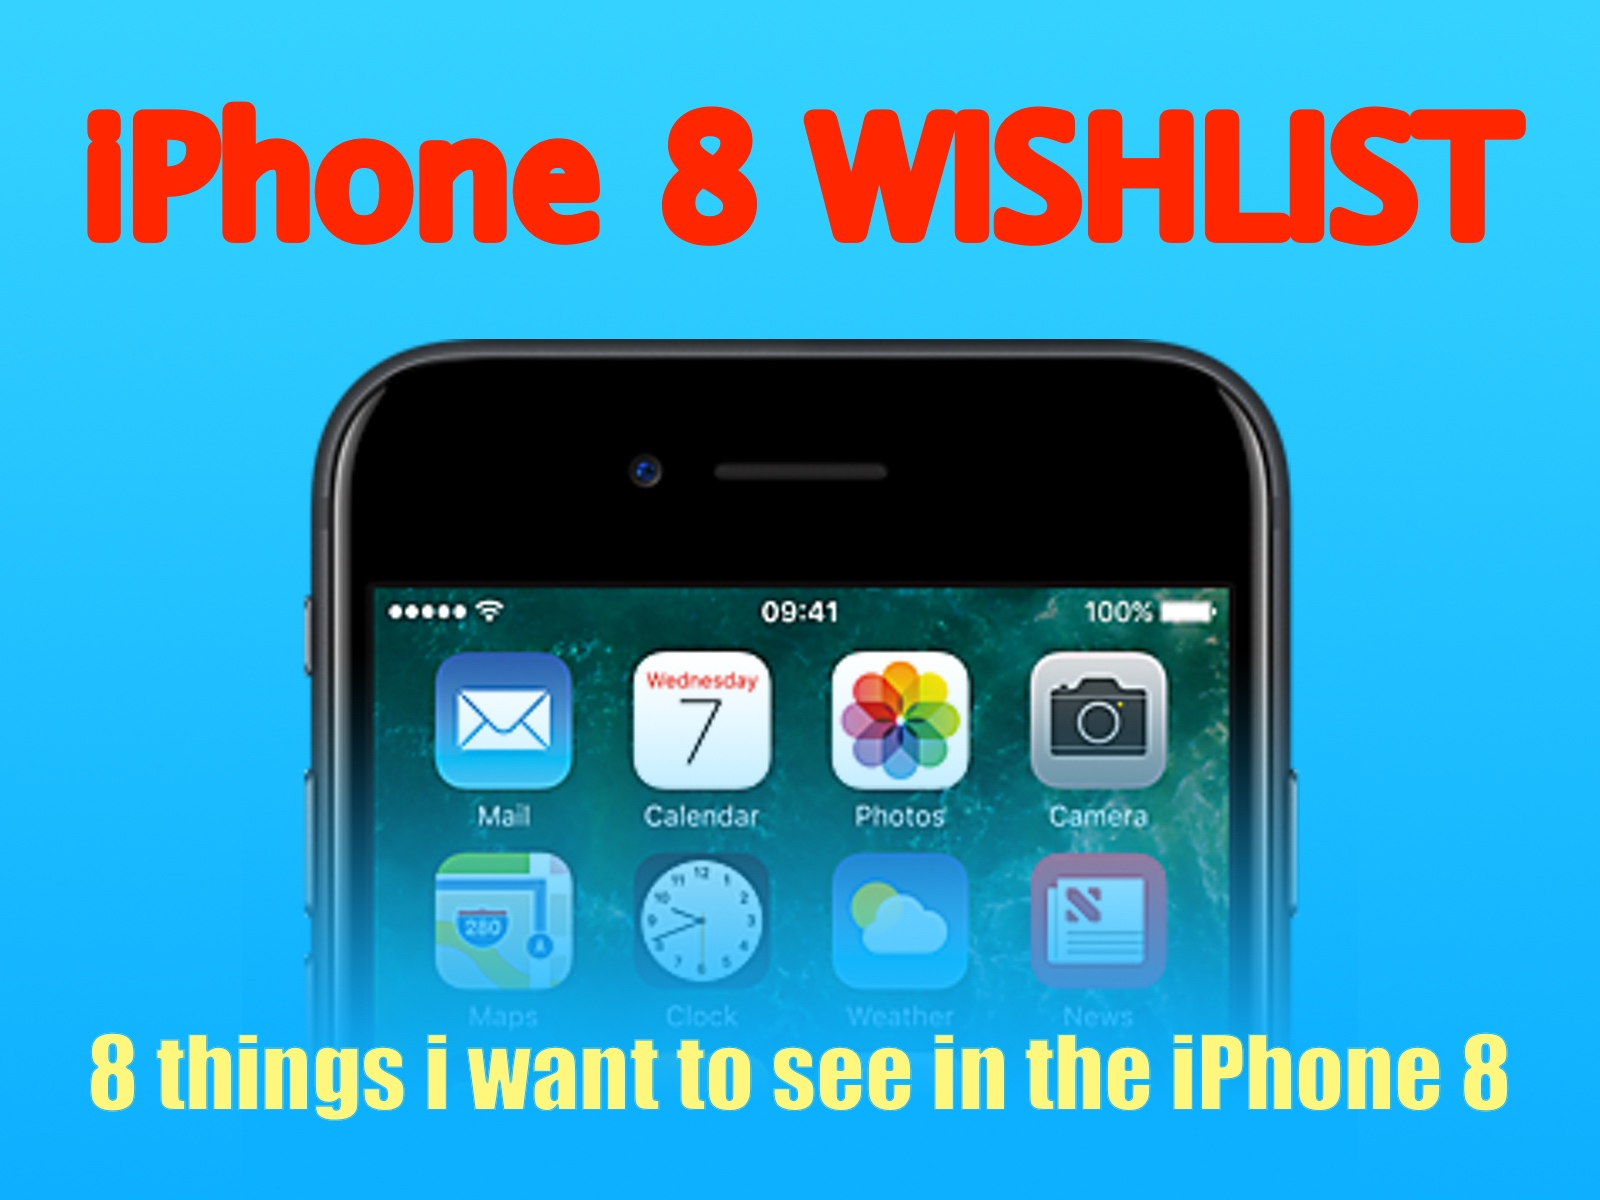 iPhone 8 Wishlist - 8 things I want to see in the iPhone 8